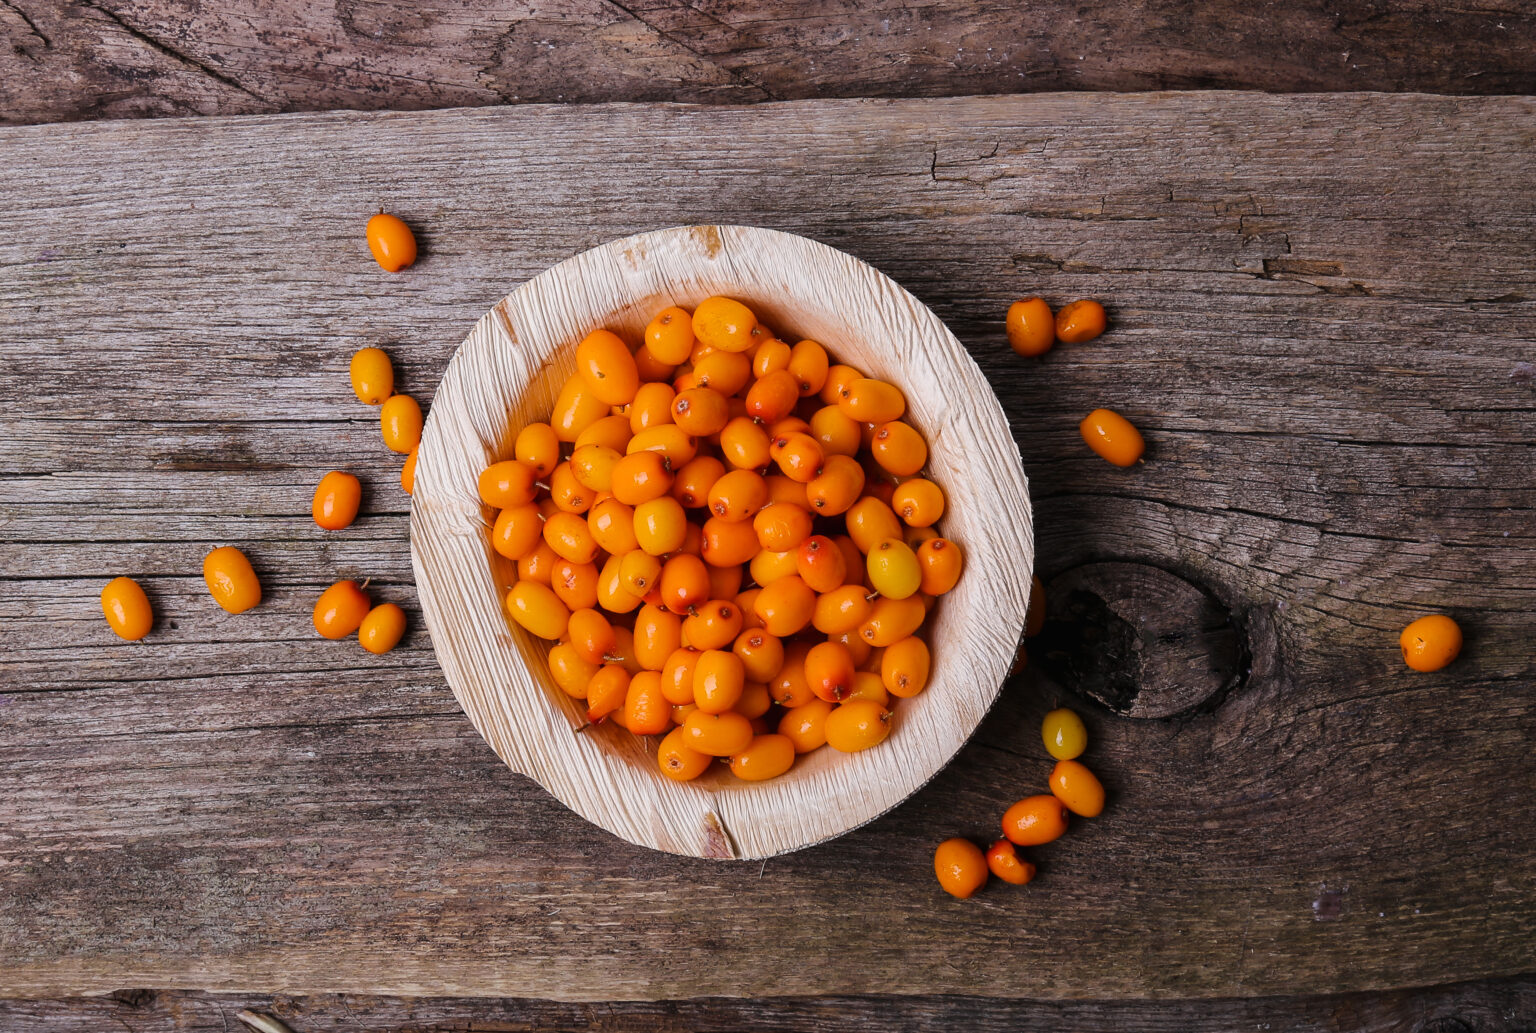 Sea buckthorn on the wooden table